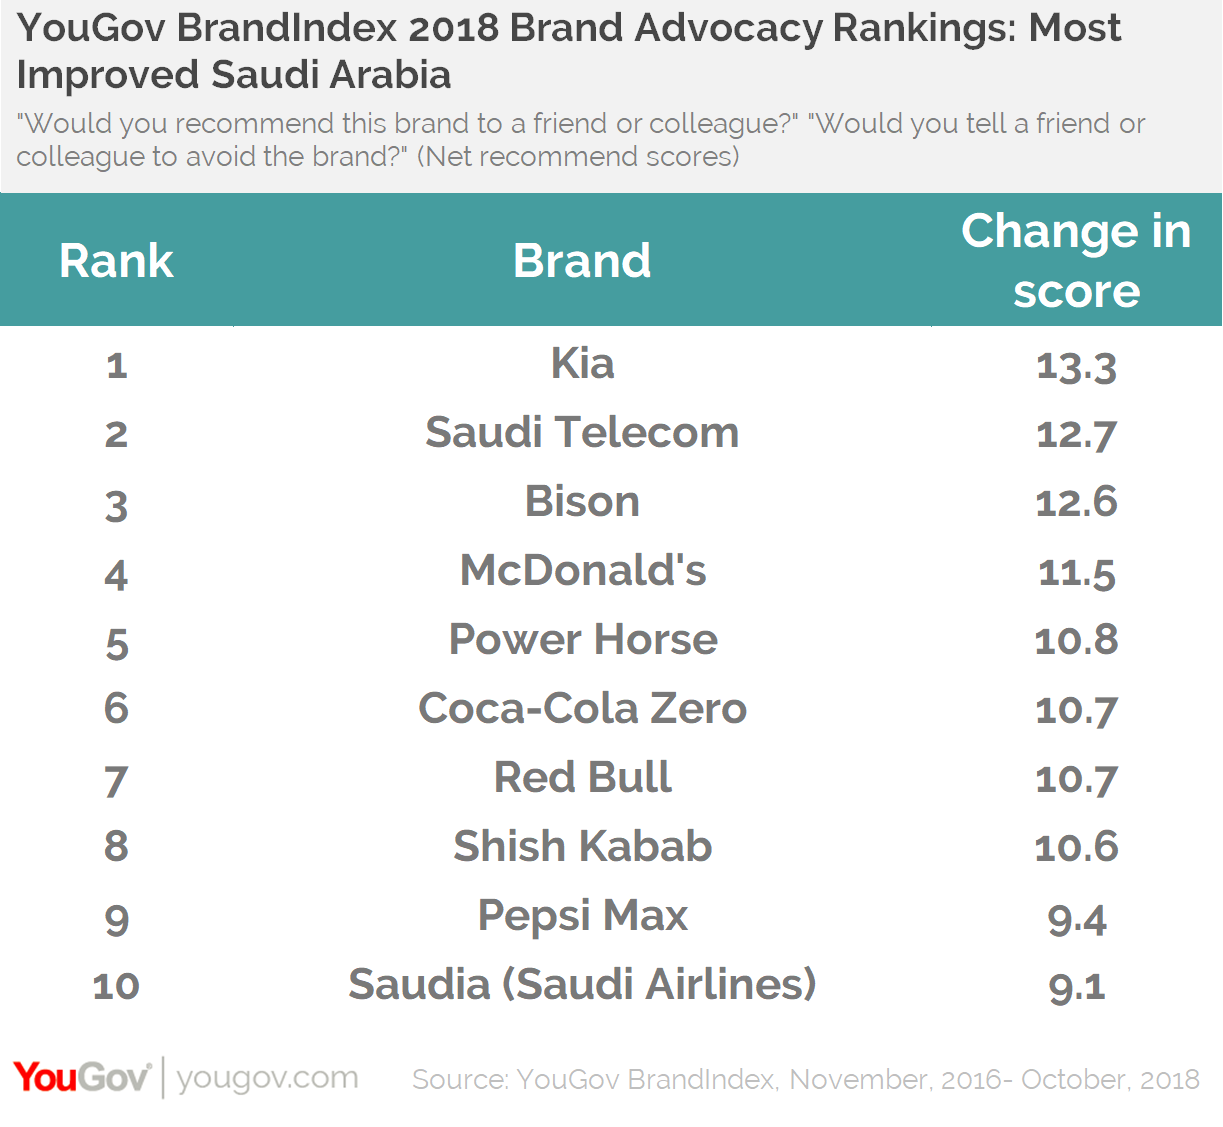 YouGov BrandIndex 2018 Brand Advocacy rankings: Most improved KSA